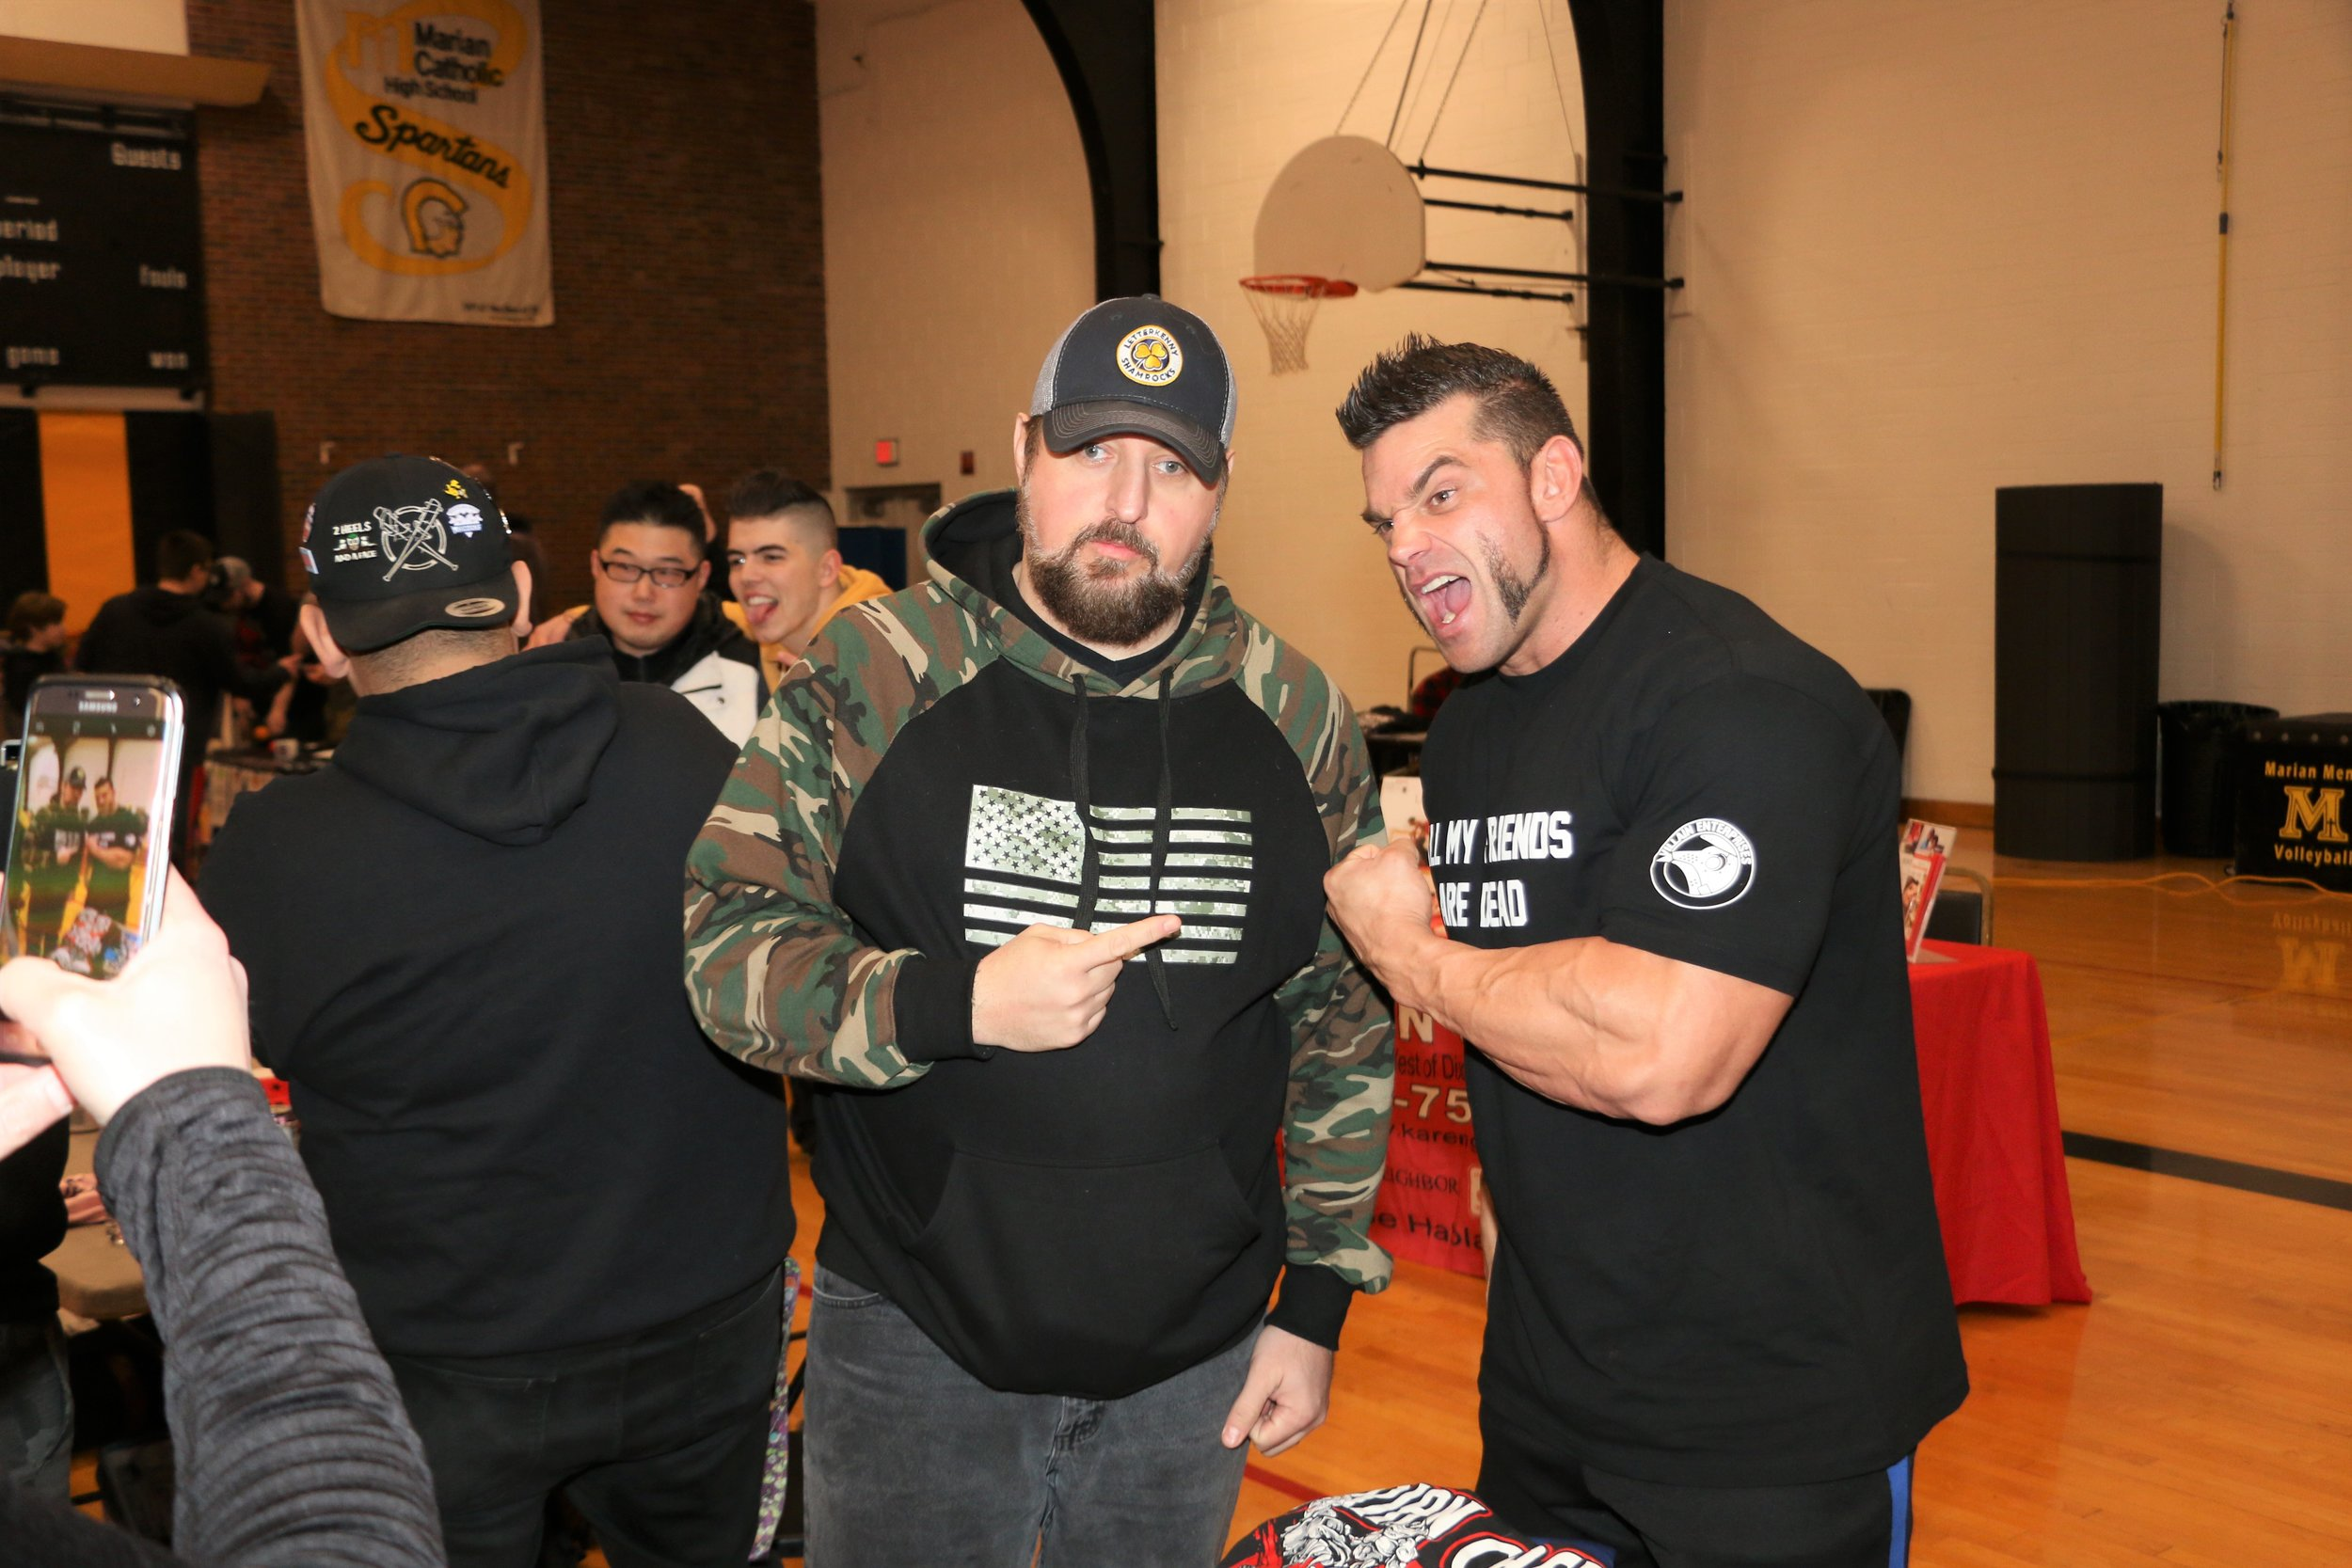 A fan poses with Warrior Wrestling Champion Brian Cage during the VIP Fan Fest.